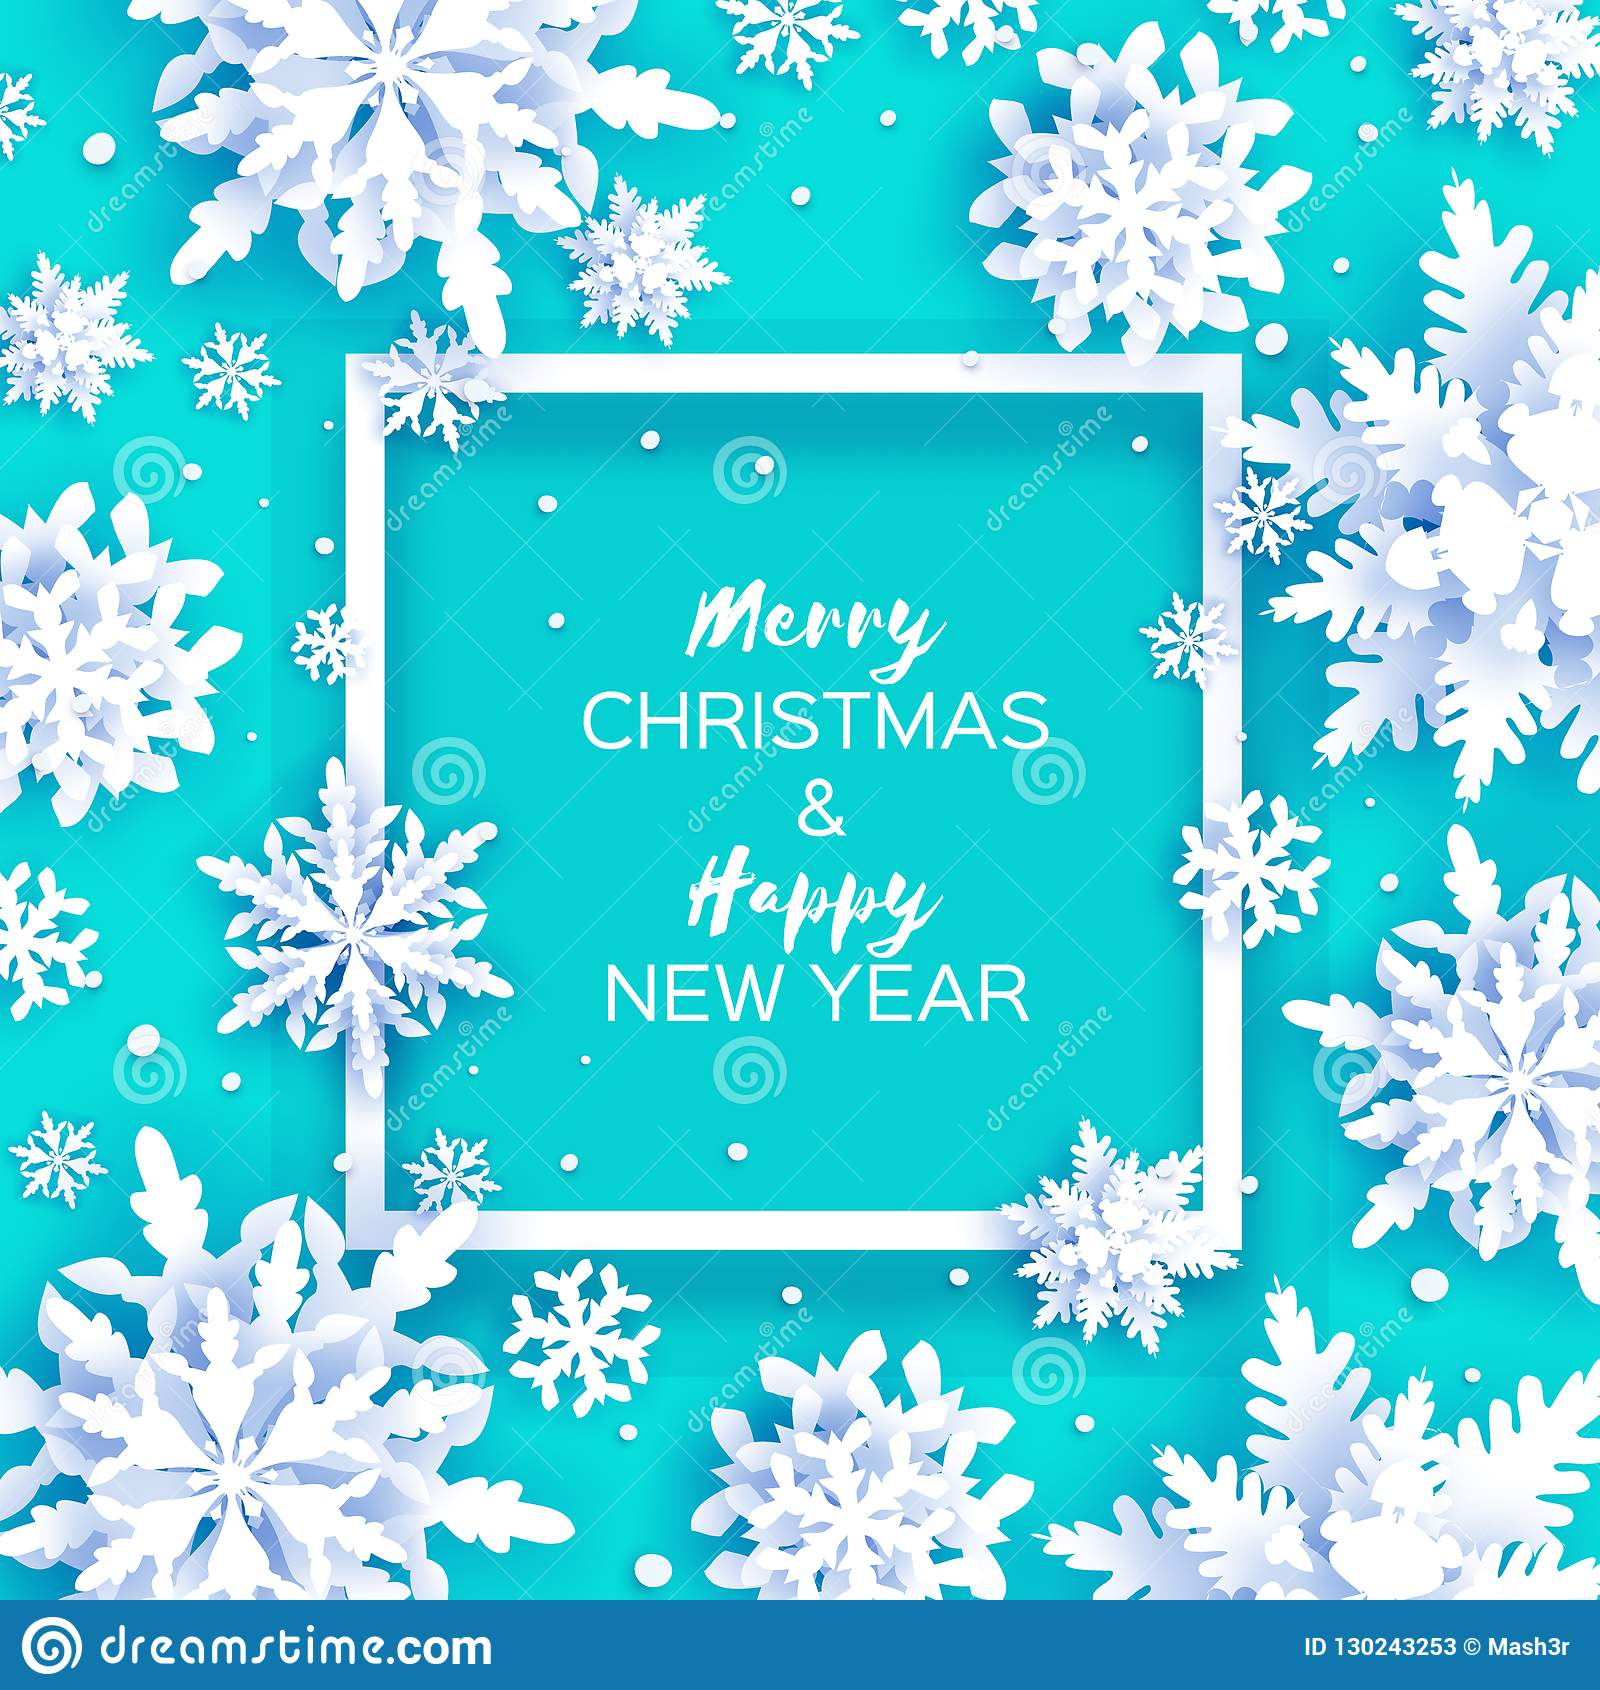 Merry Christmas And Happy New Year Greetings Card. White ...